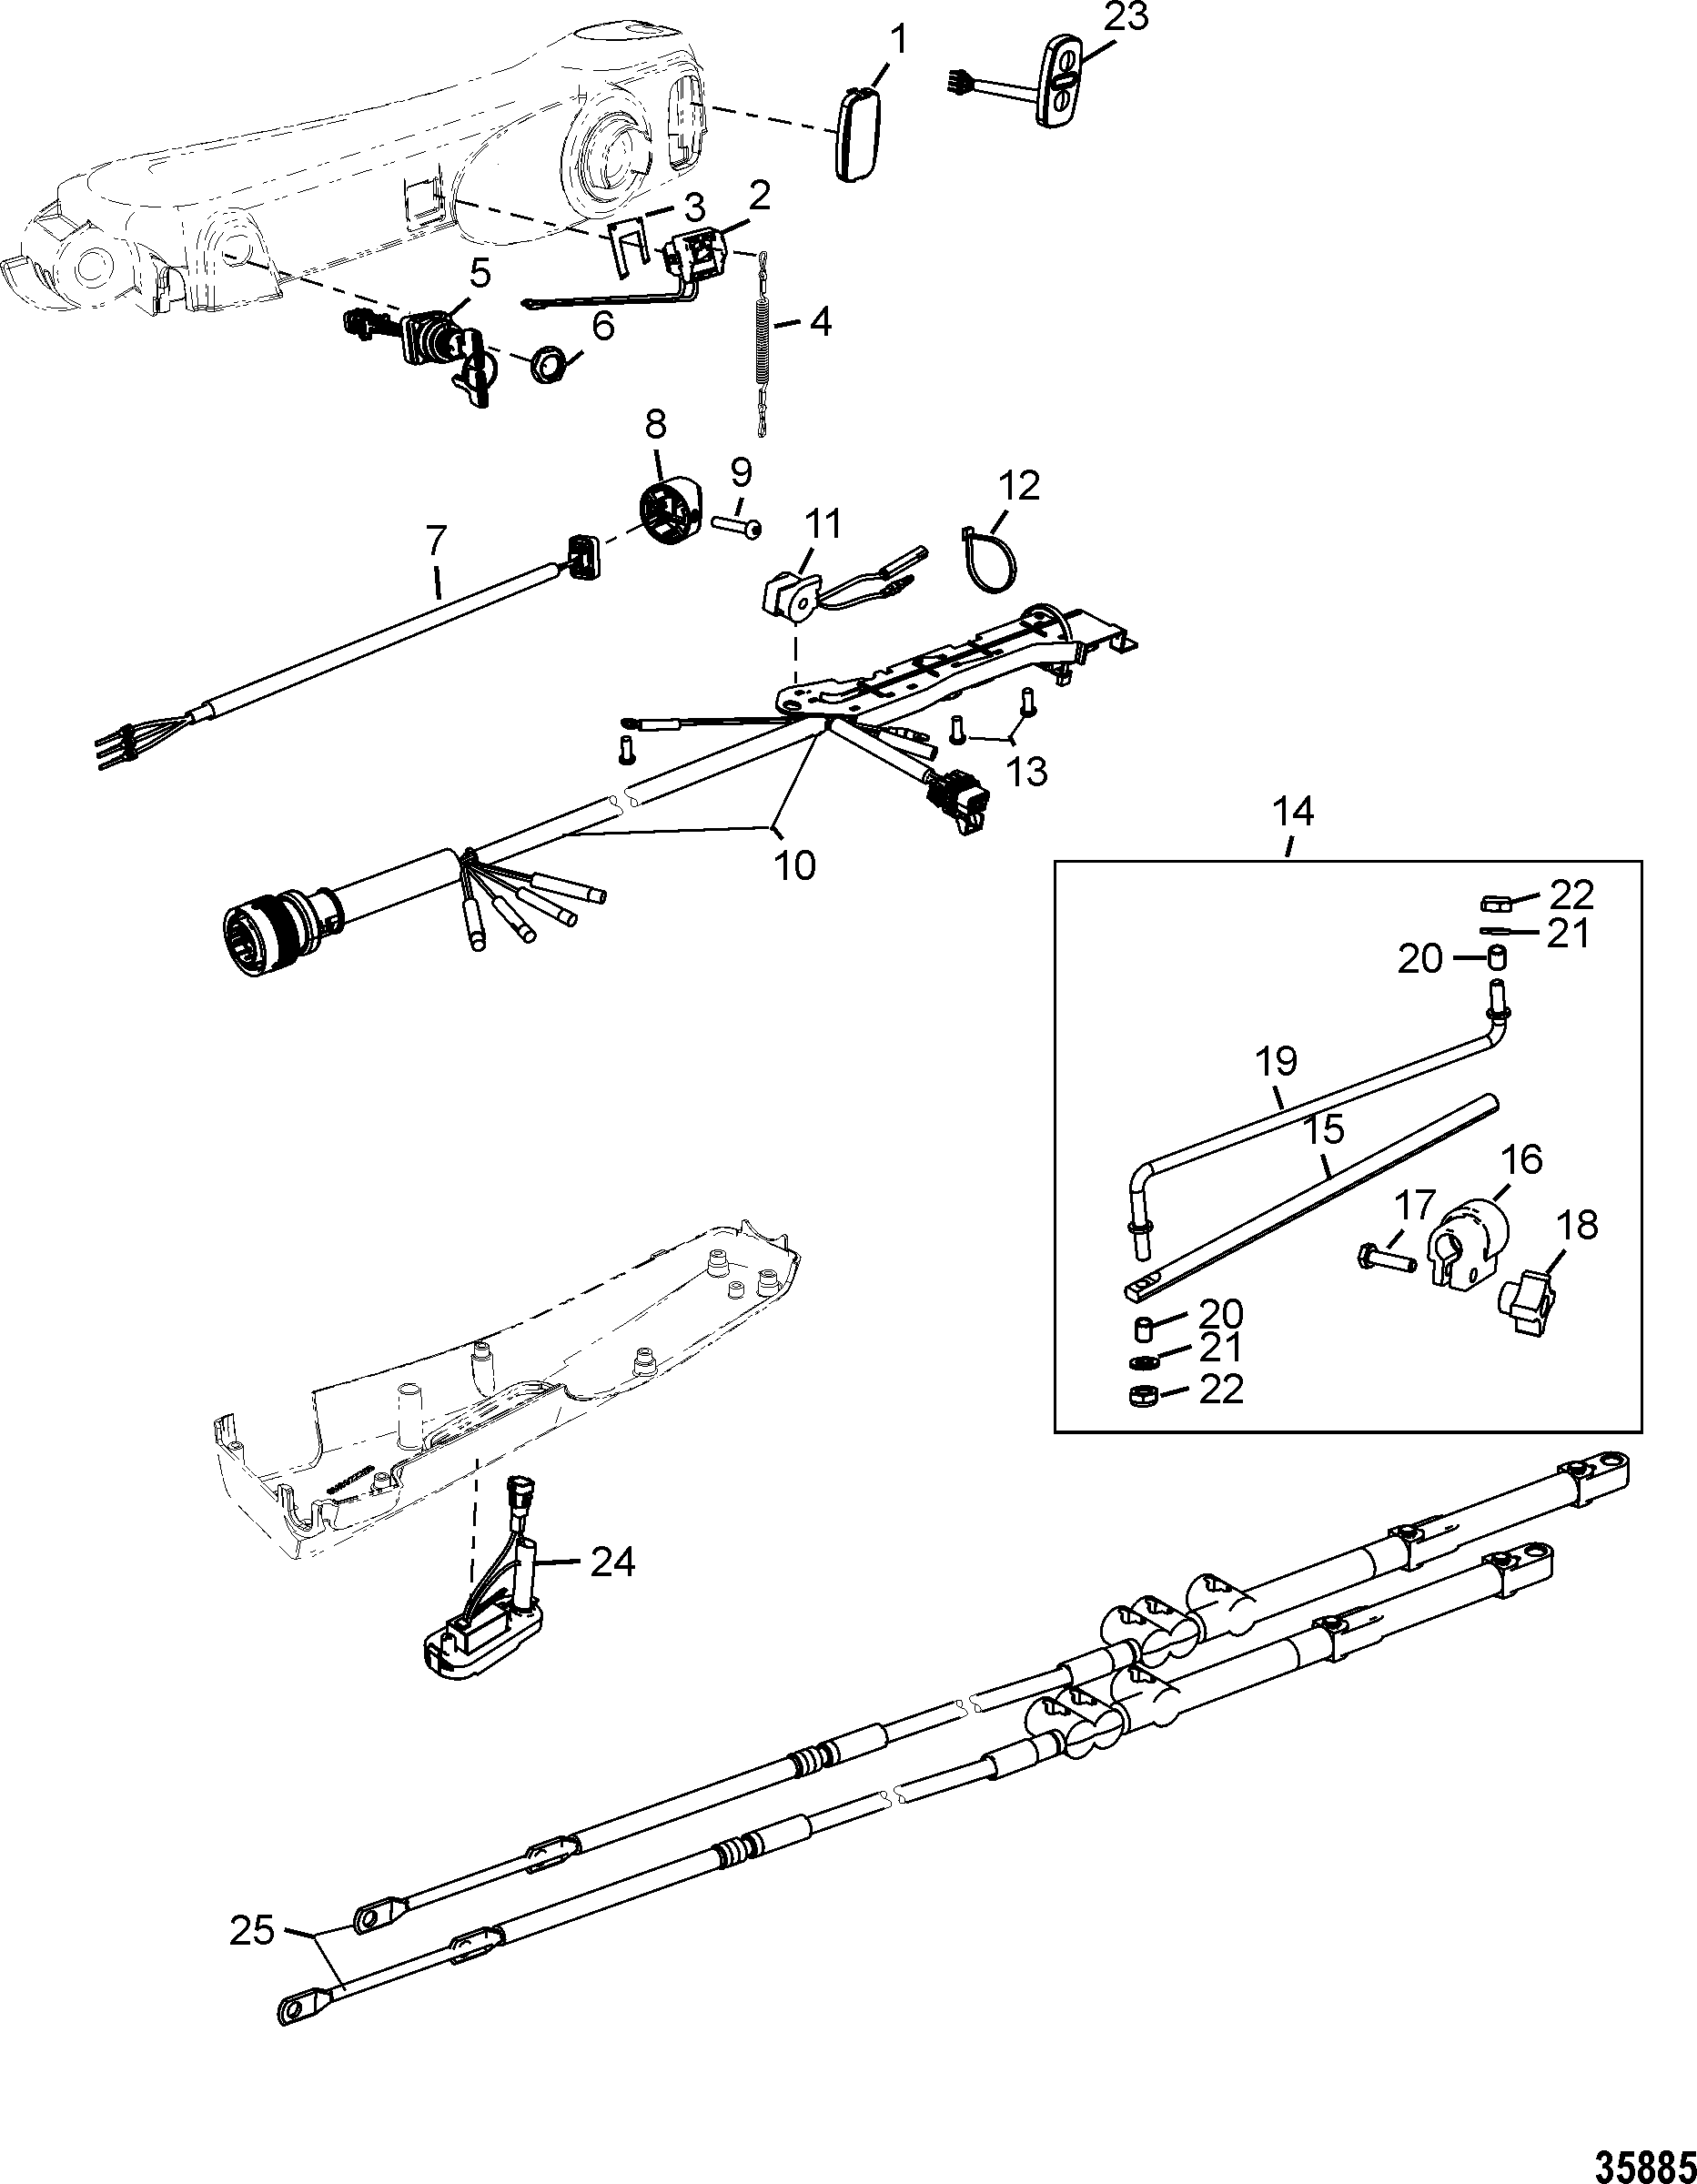 Tiller Handle Kit Components Big Tiller-Manual Mechanical FOR STEERING SYSTEMS AND COMPONENTS